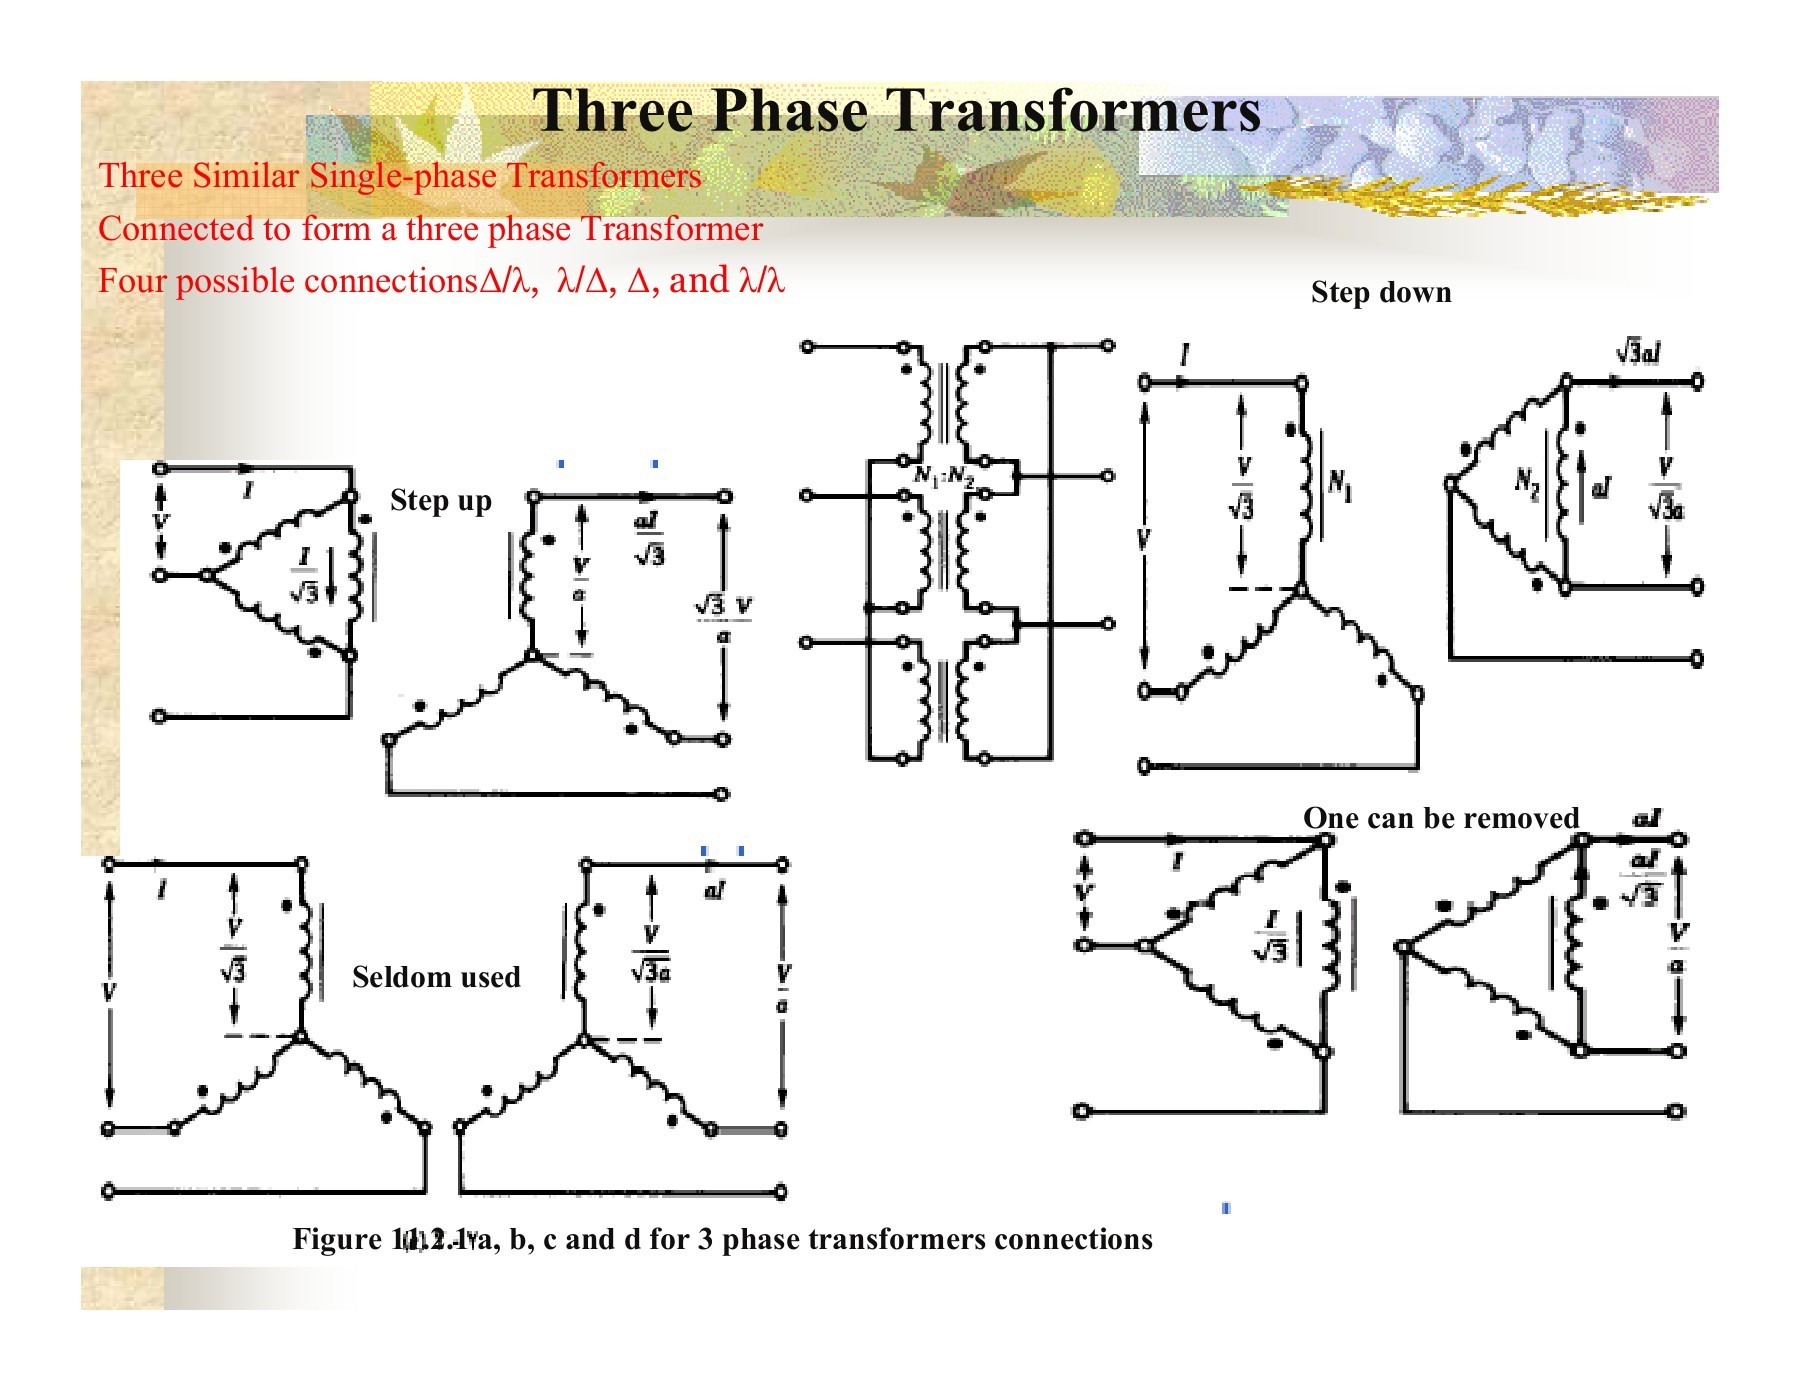 hight resolution of lesson 11 three phase transformers kfupm open courseware pages 1 35 text version fliphtml5